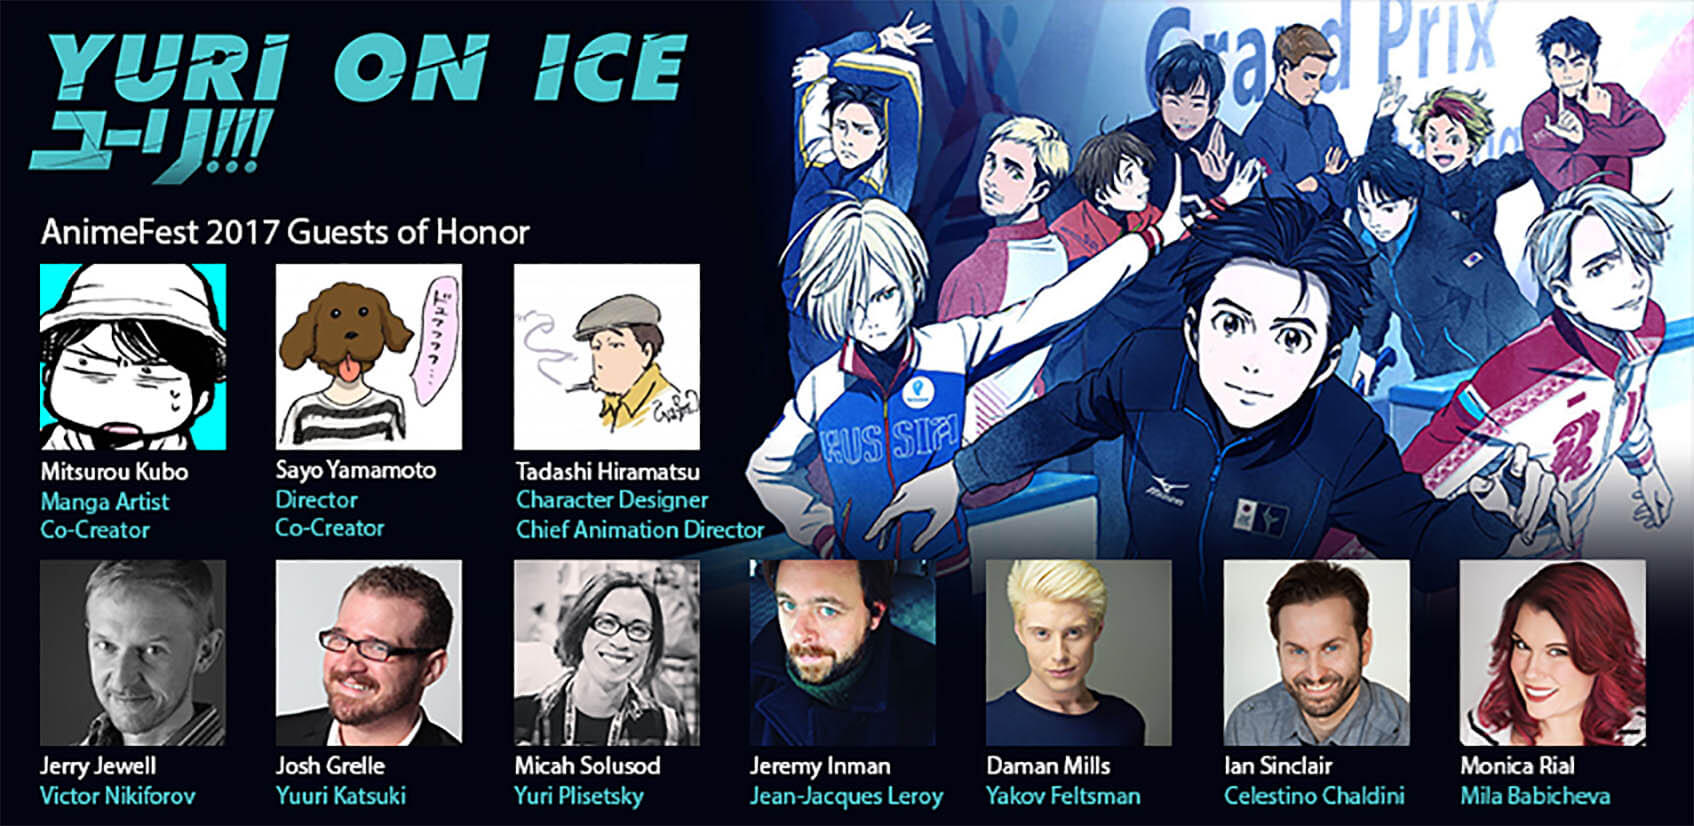 AnimeFest Yuri!!! on ICE Guests